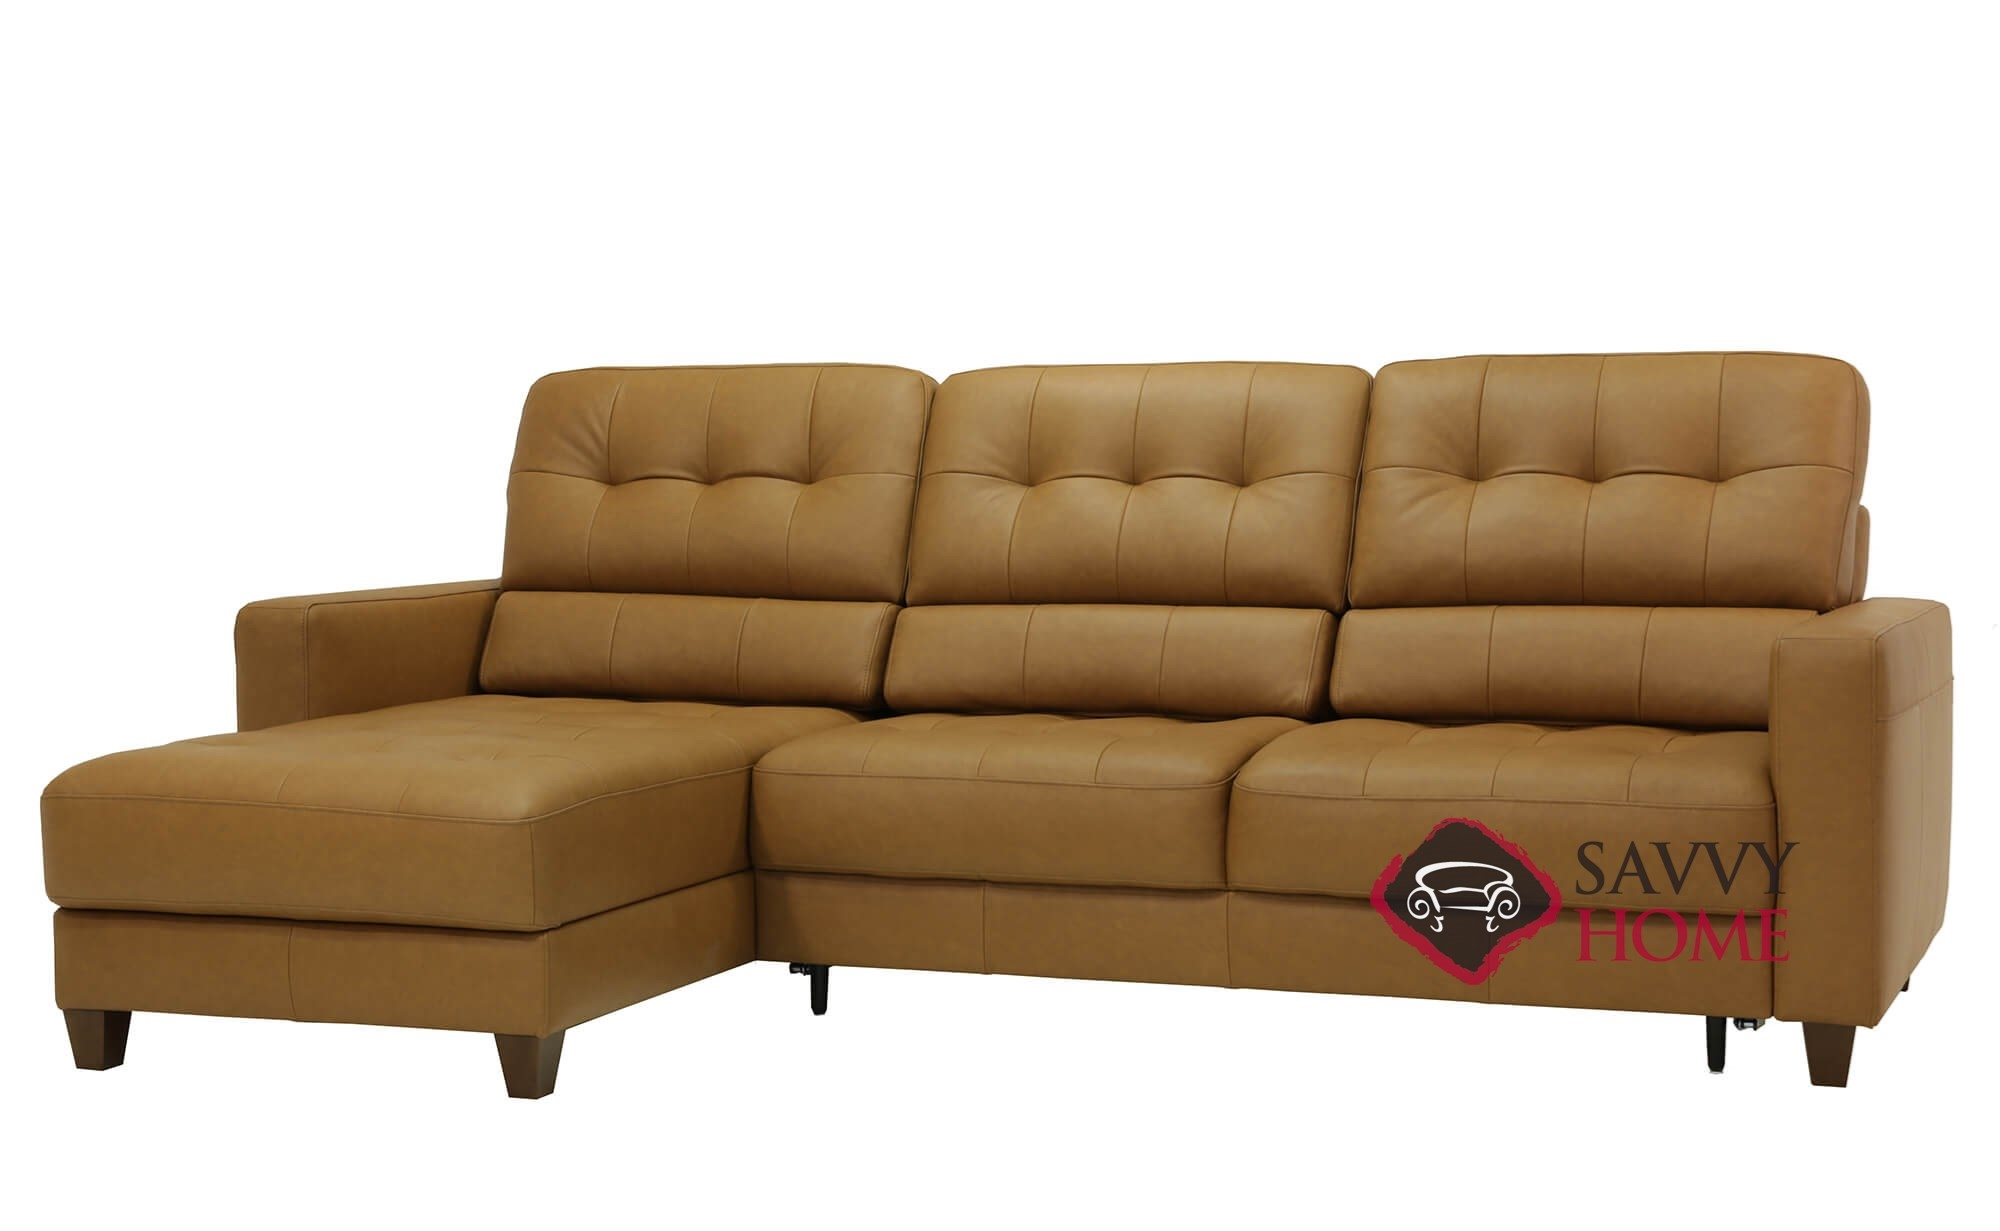 Noah Fabric Sleeper Sofas Chaise Sectional by Luonto is ...